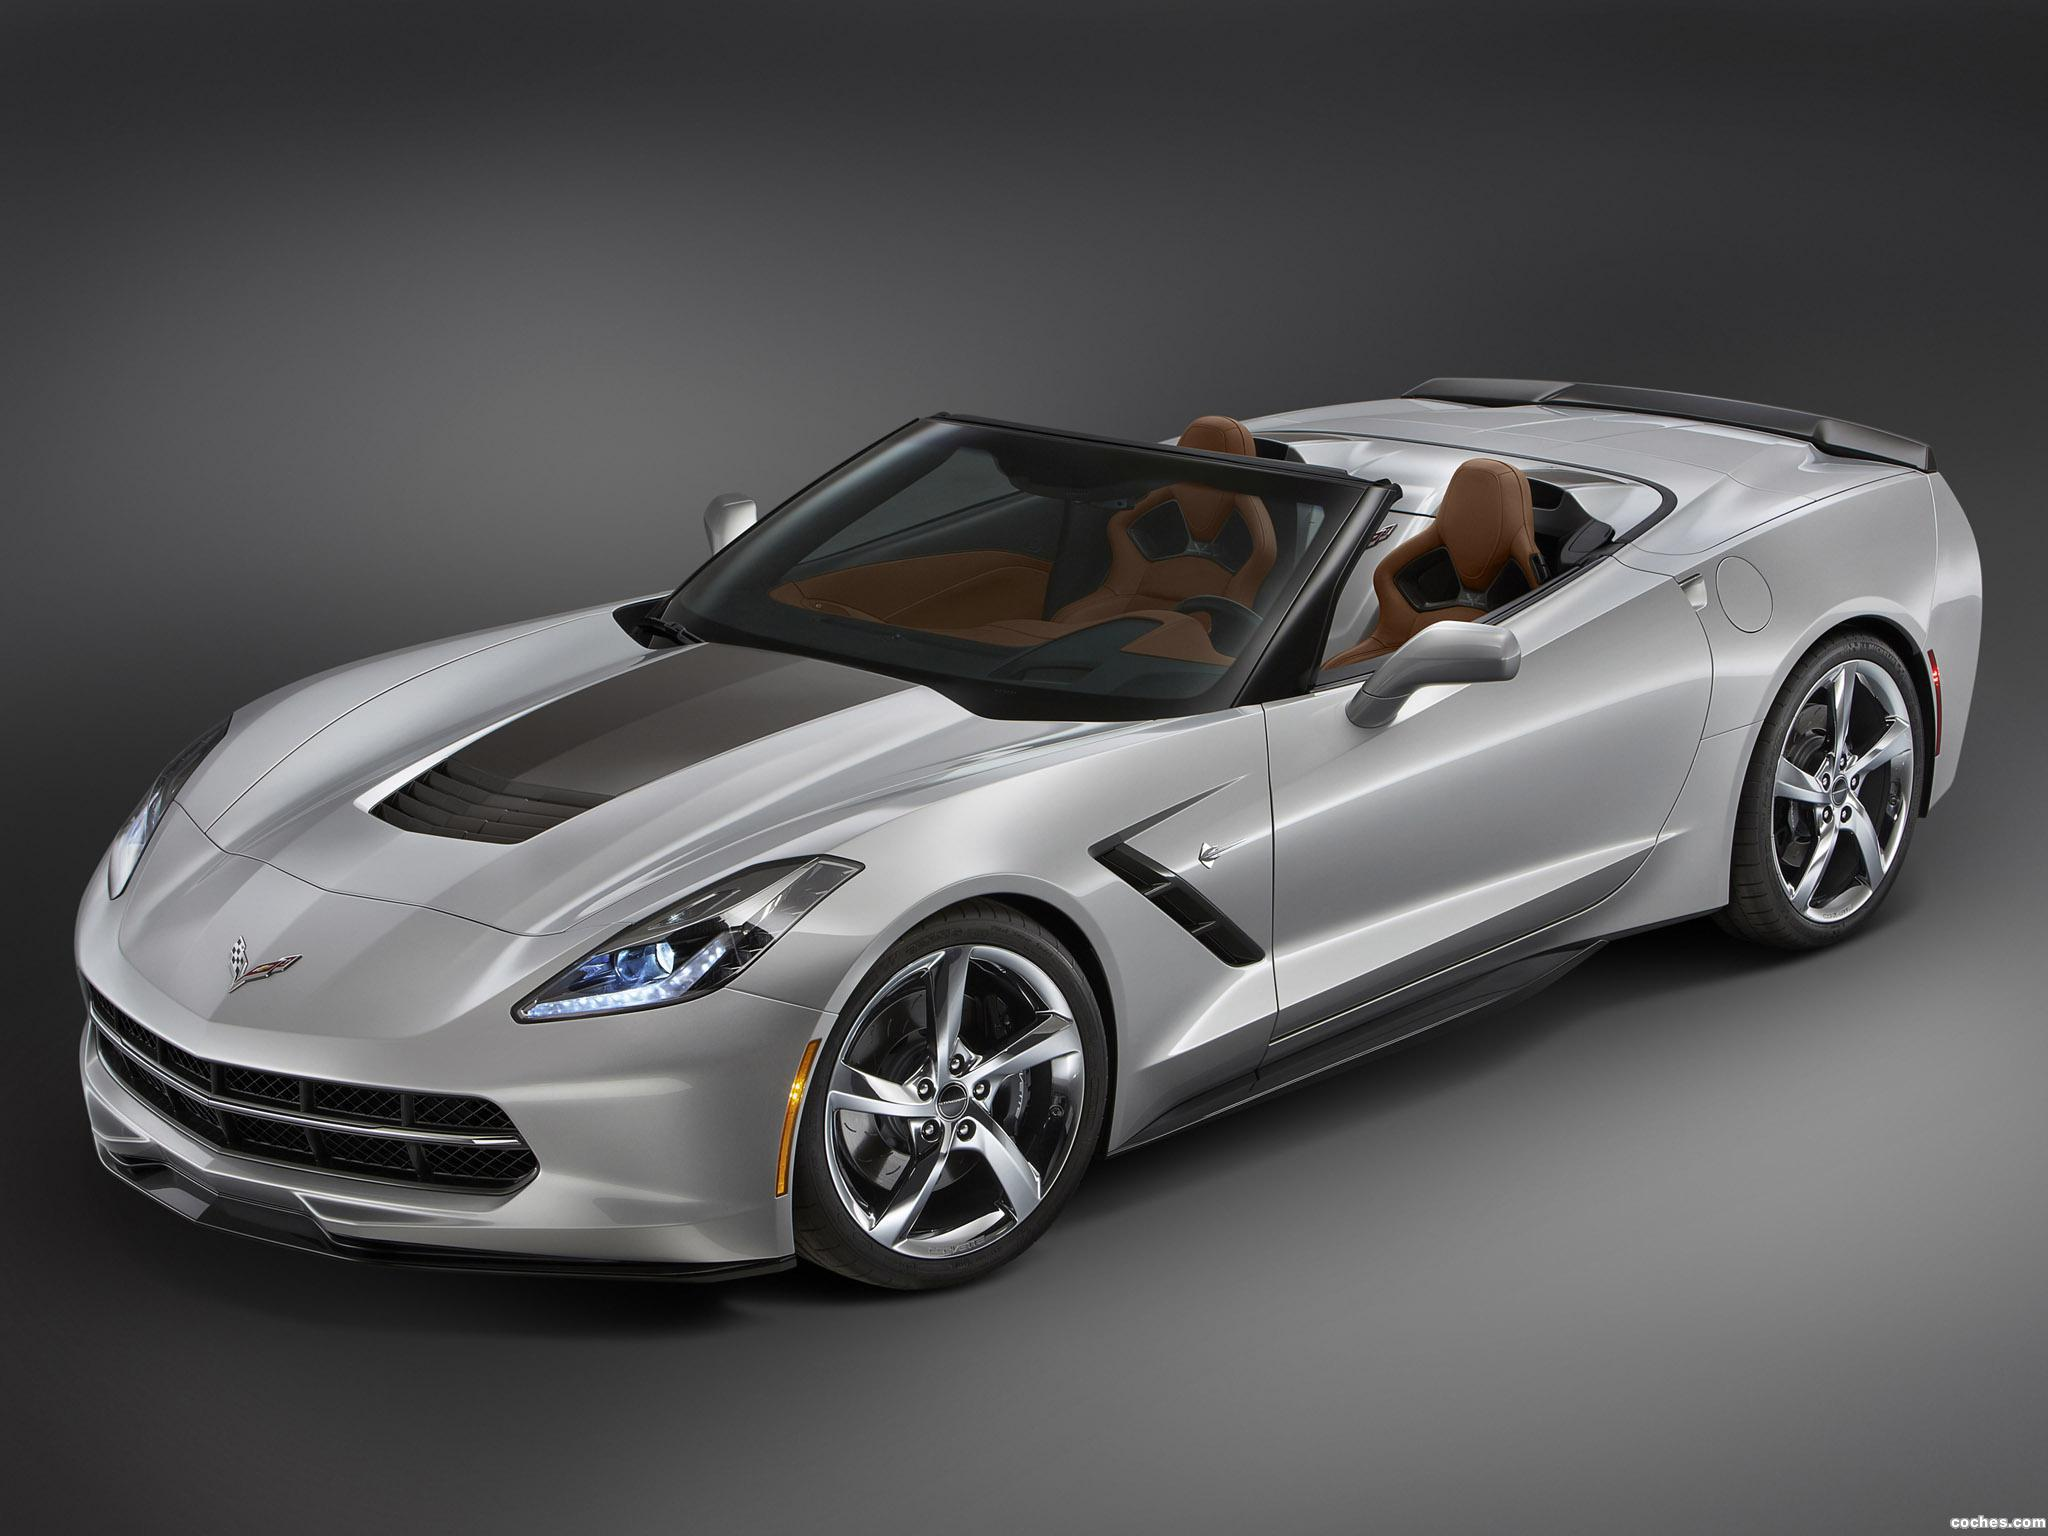 Foto 0 de Chevrolet Corvette Stingray Convertible Atlantic C7 2013